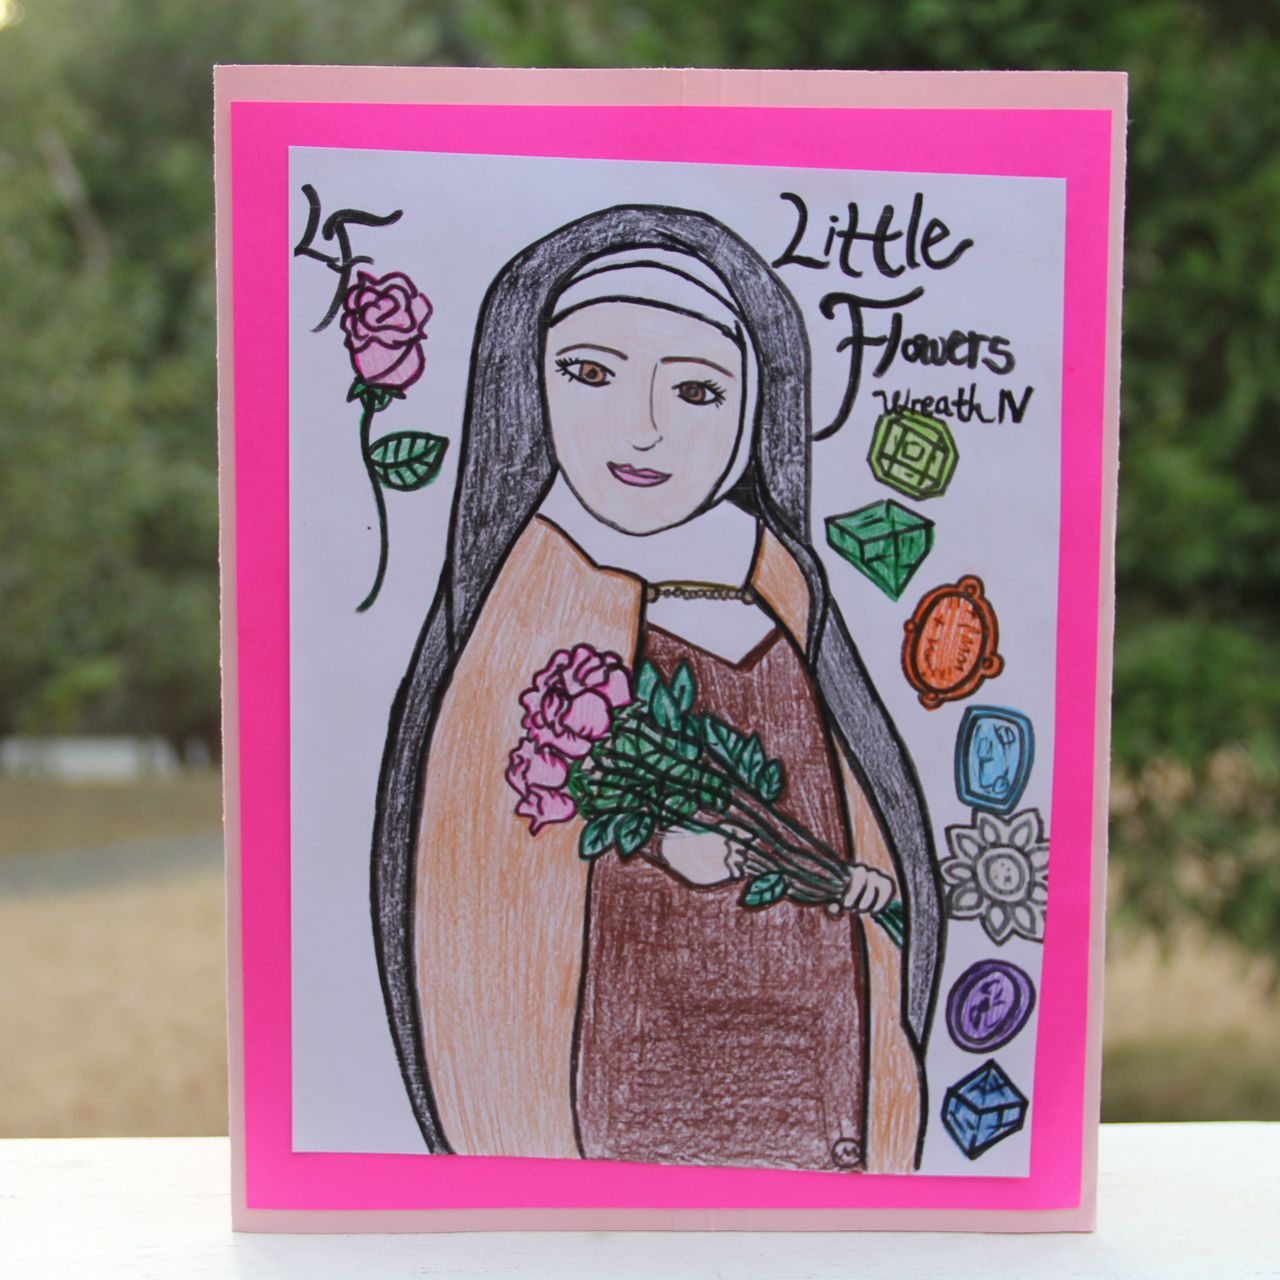 Shower of Roses: Little Flowers Girls' Club Wreath IV Lap Book - photo#26